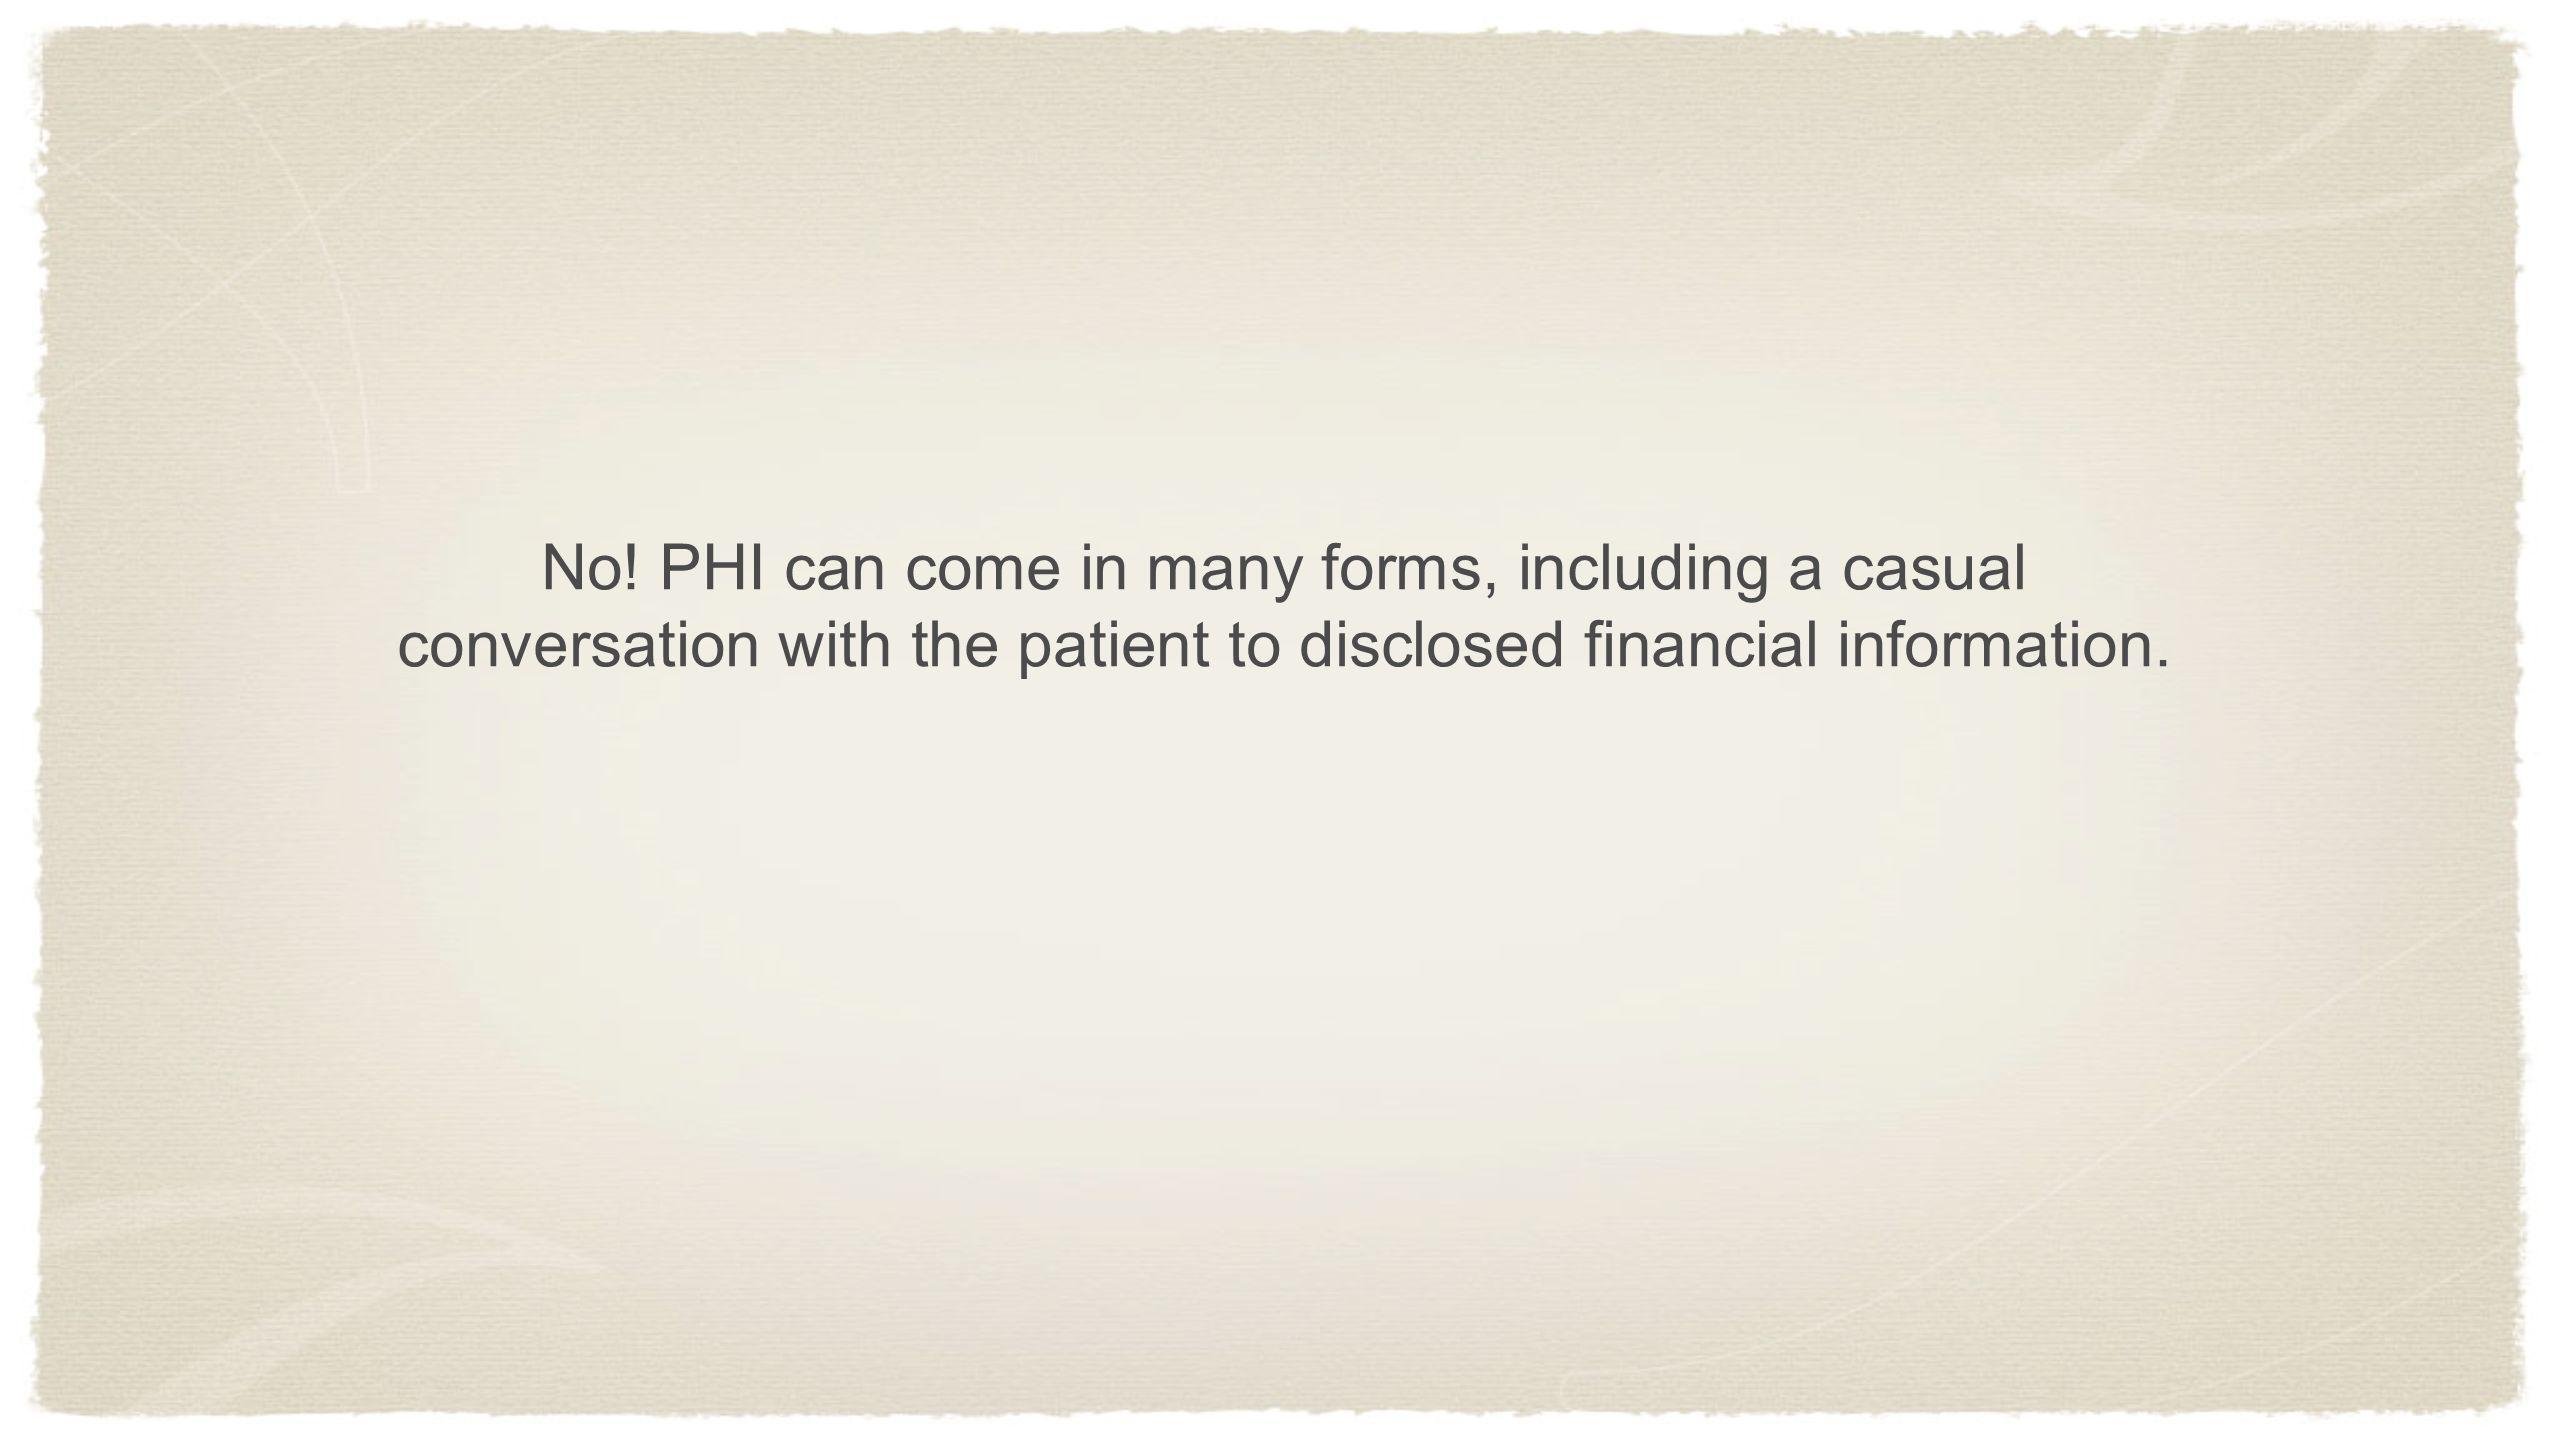 No! PHI can come in many forms, including a casual conversation with the patient to disclosed financial information.